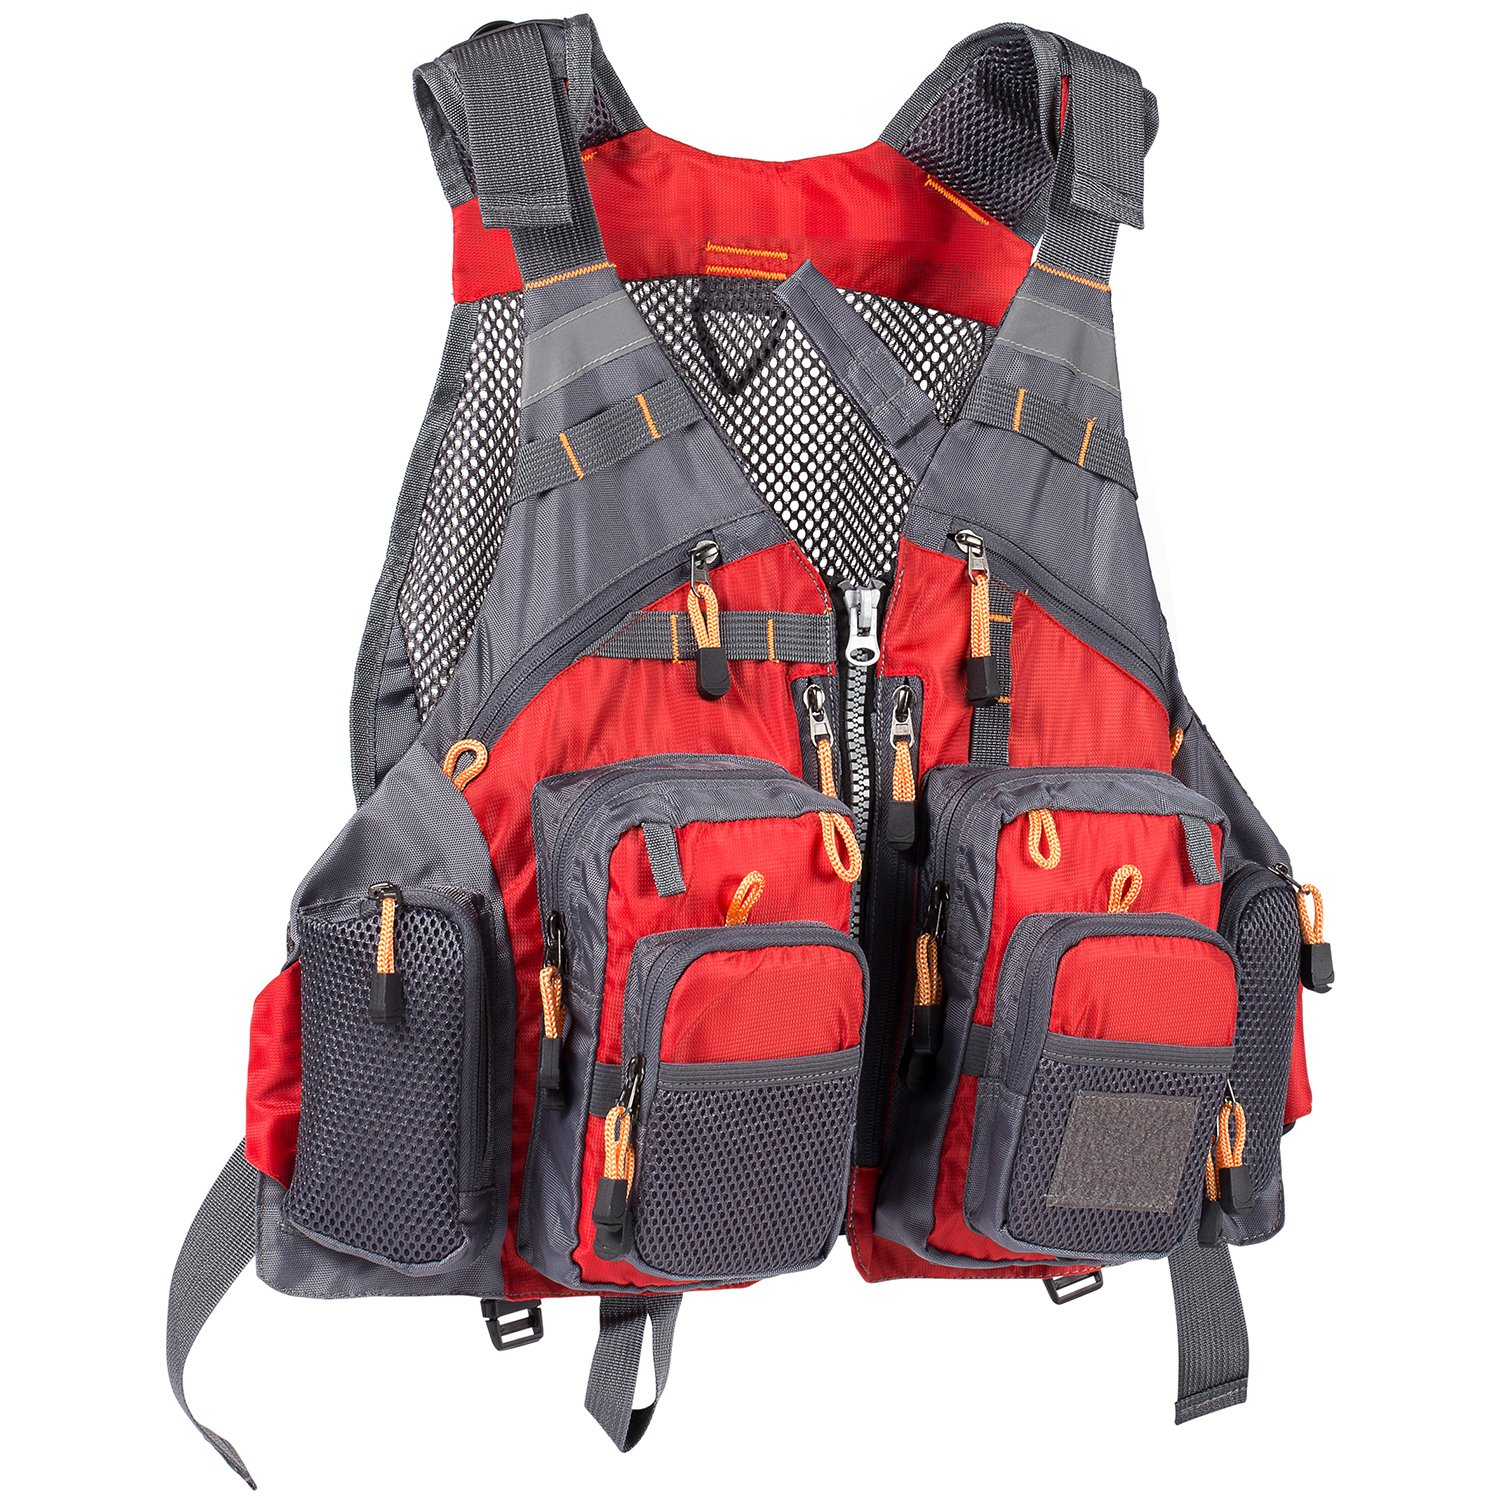 Bassdash Strap Fishing Vest Adjustable for Men and Women, for Fly Bass Fishing and Outdoor Activities Red